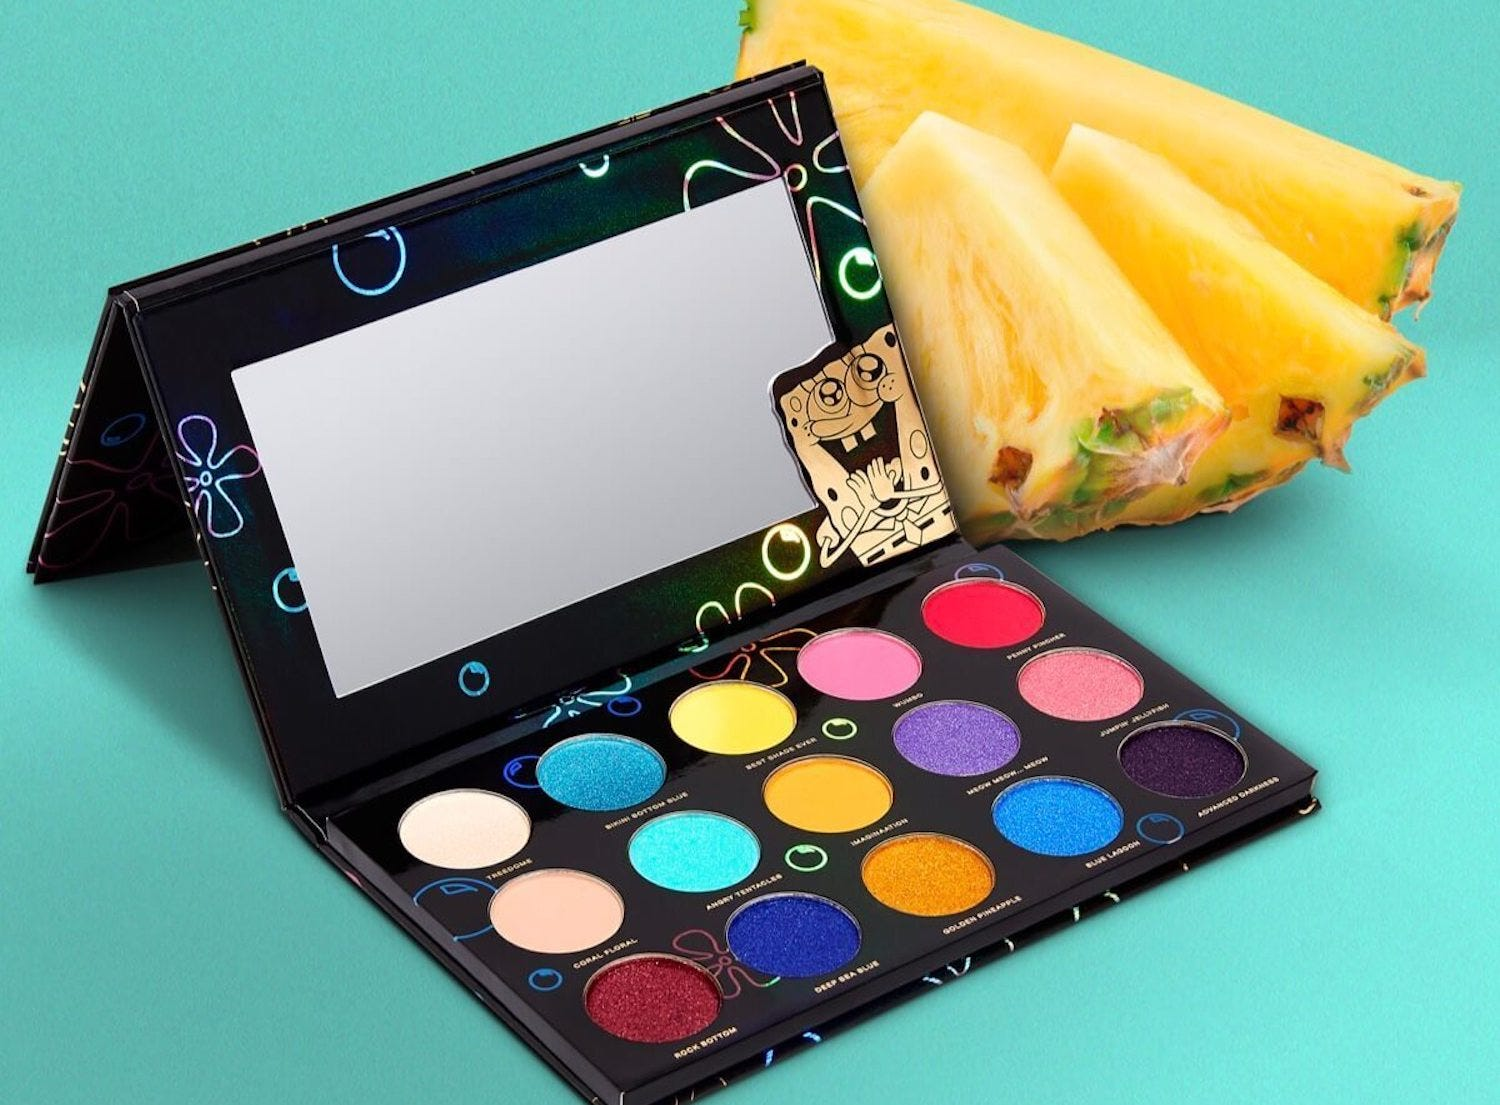 An open makeup palette with a rainbow of eyeshadows and a small mirror, next to a few pineapple slices